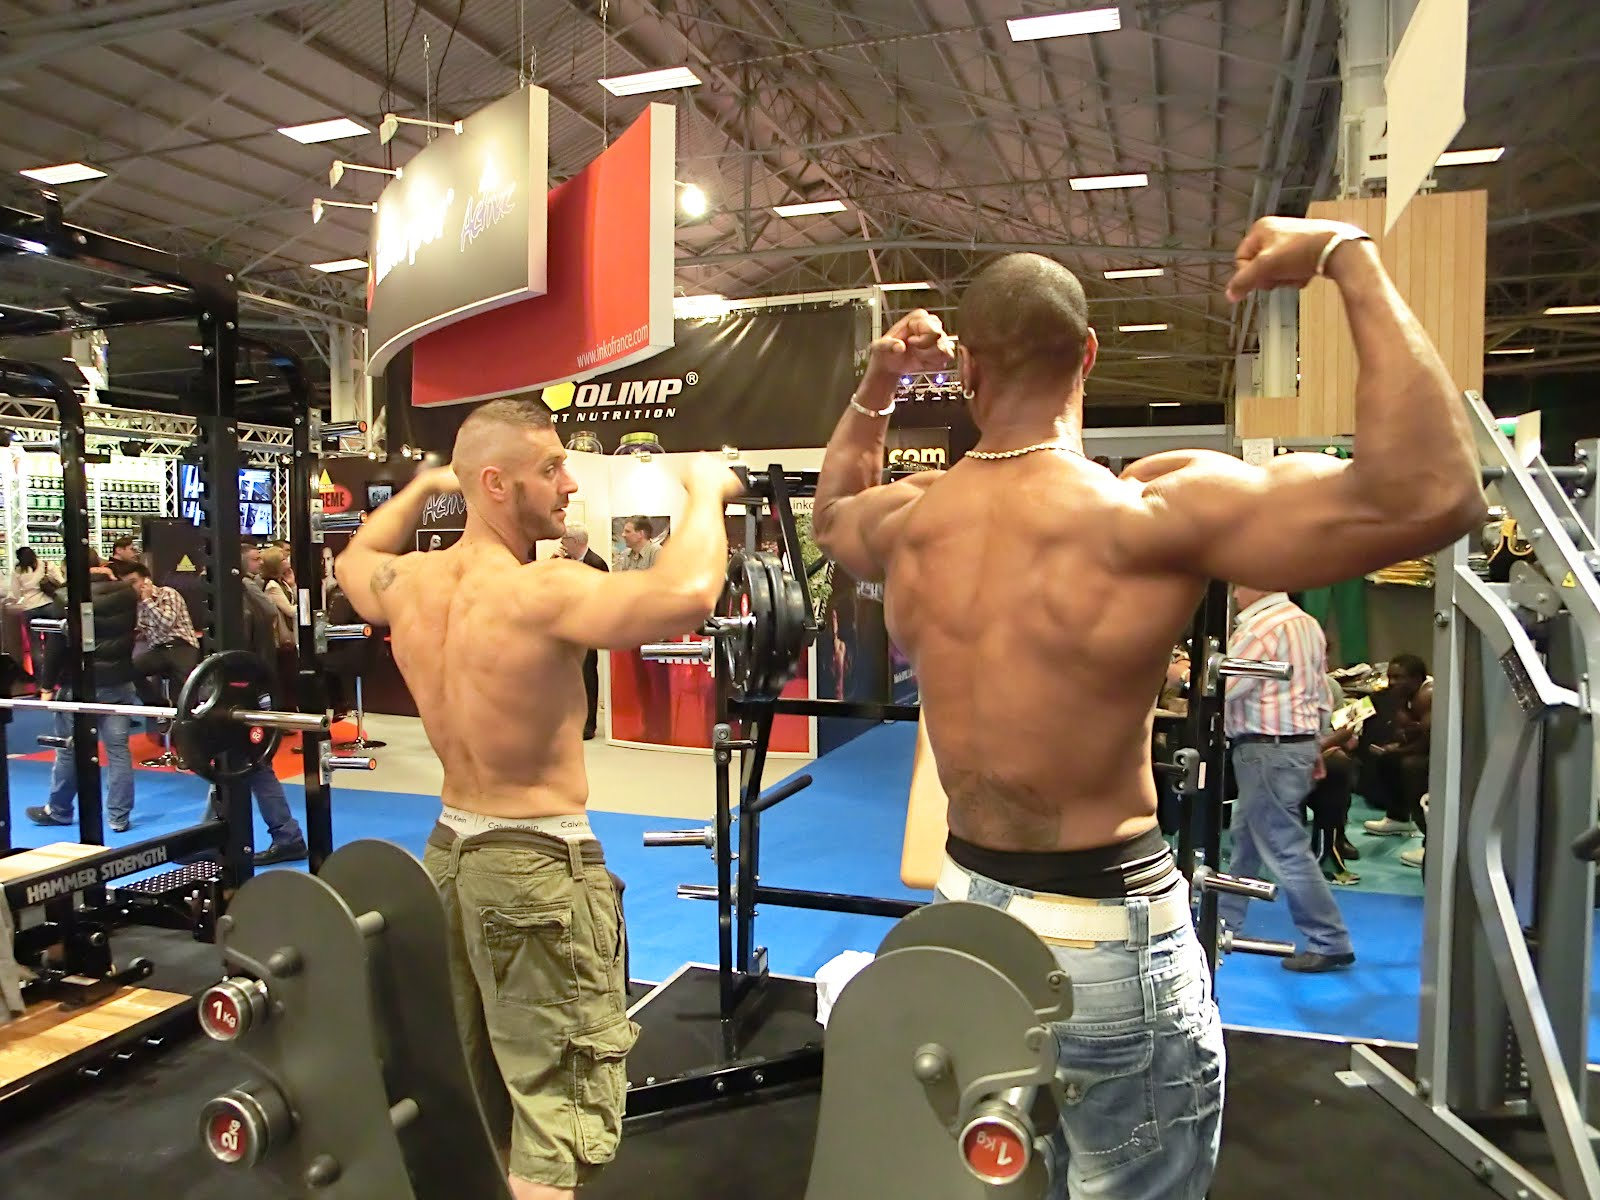 Salon Du Fitness 2017 Grégory Capra Visite Au Body Fitness Form 39expo 2012